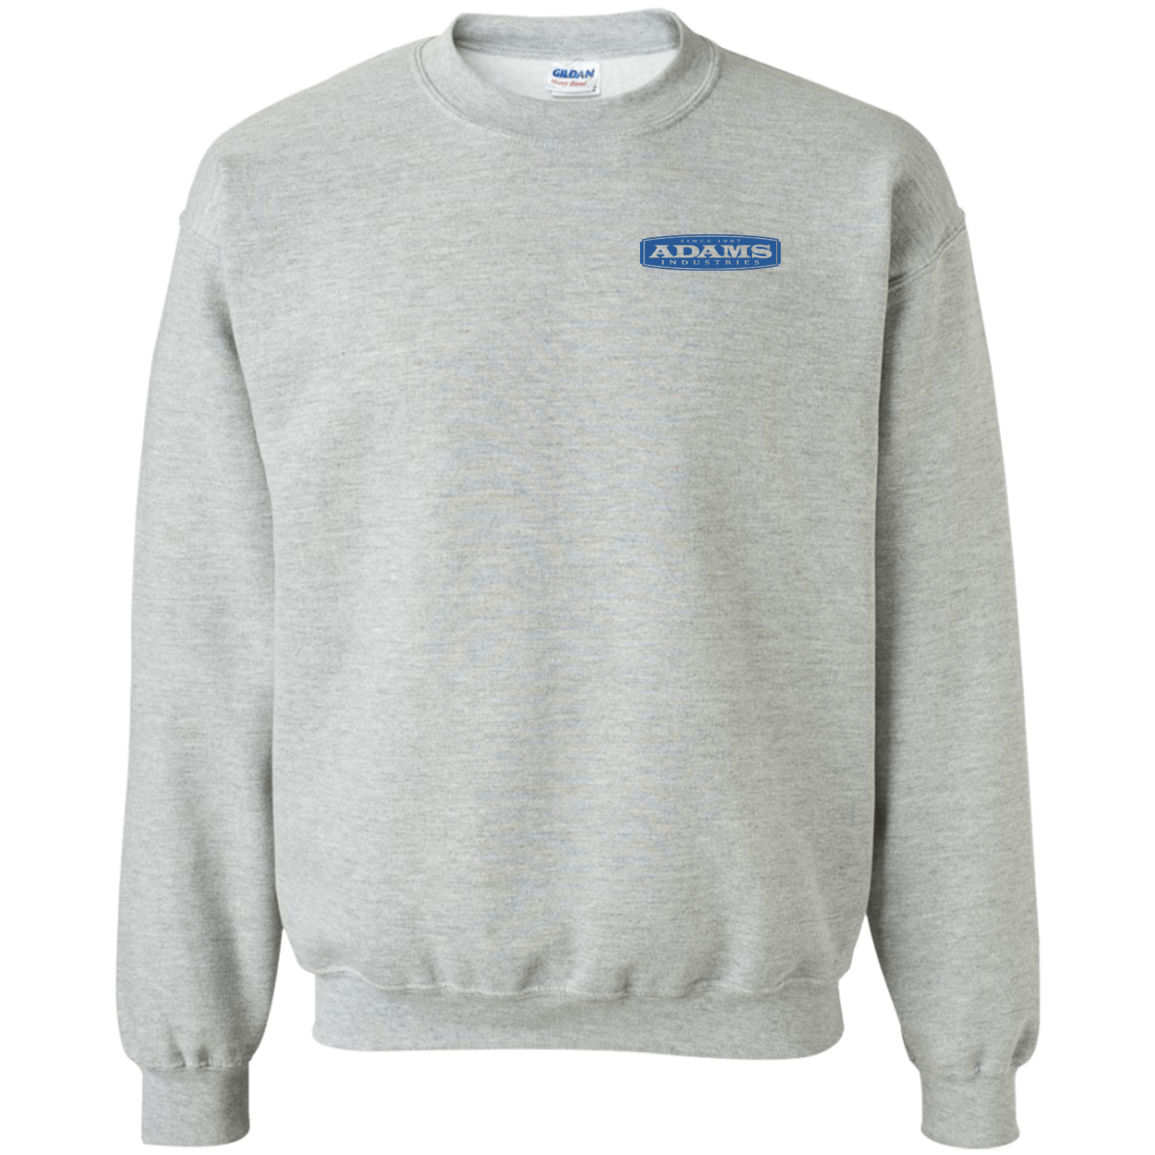 Adams Crewneck Pullover Sweatshirt  8 oz.